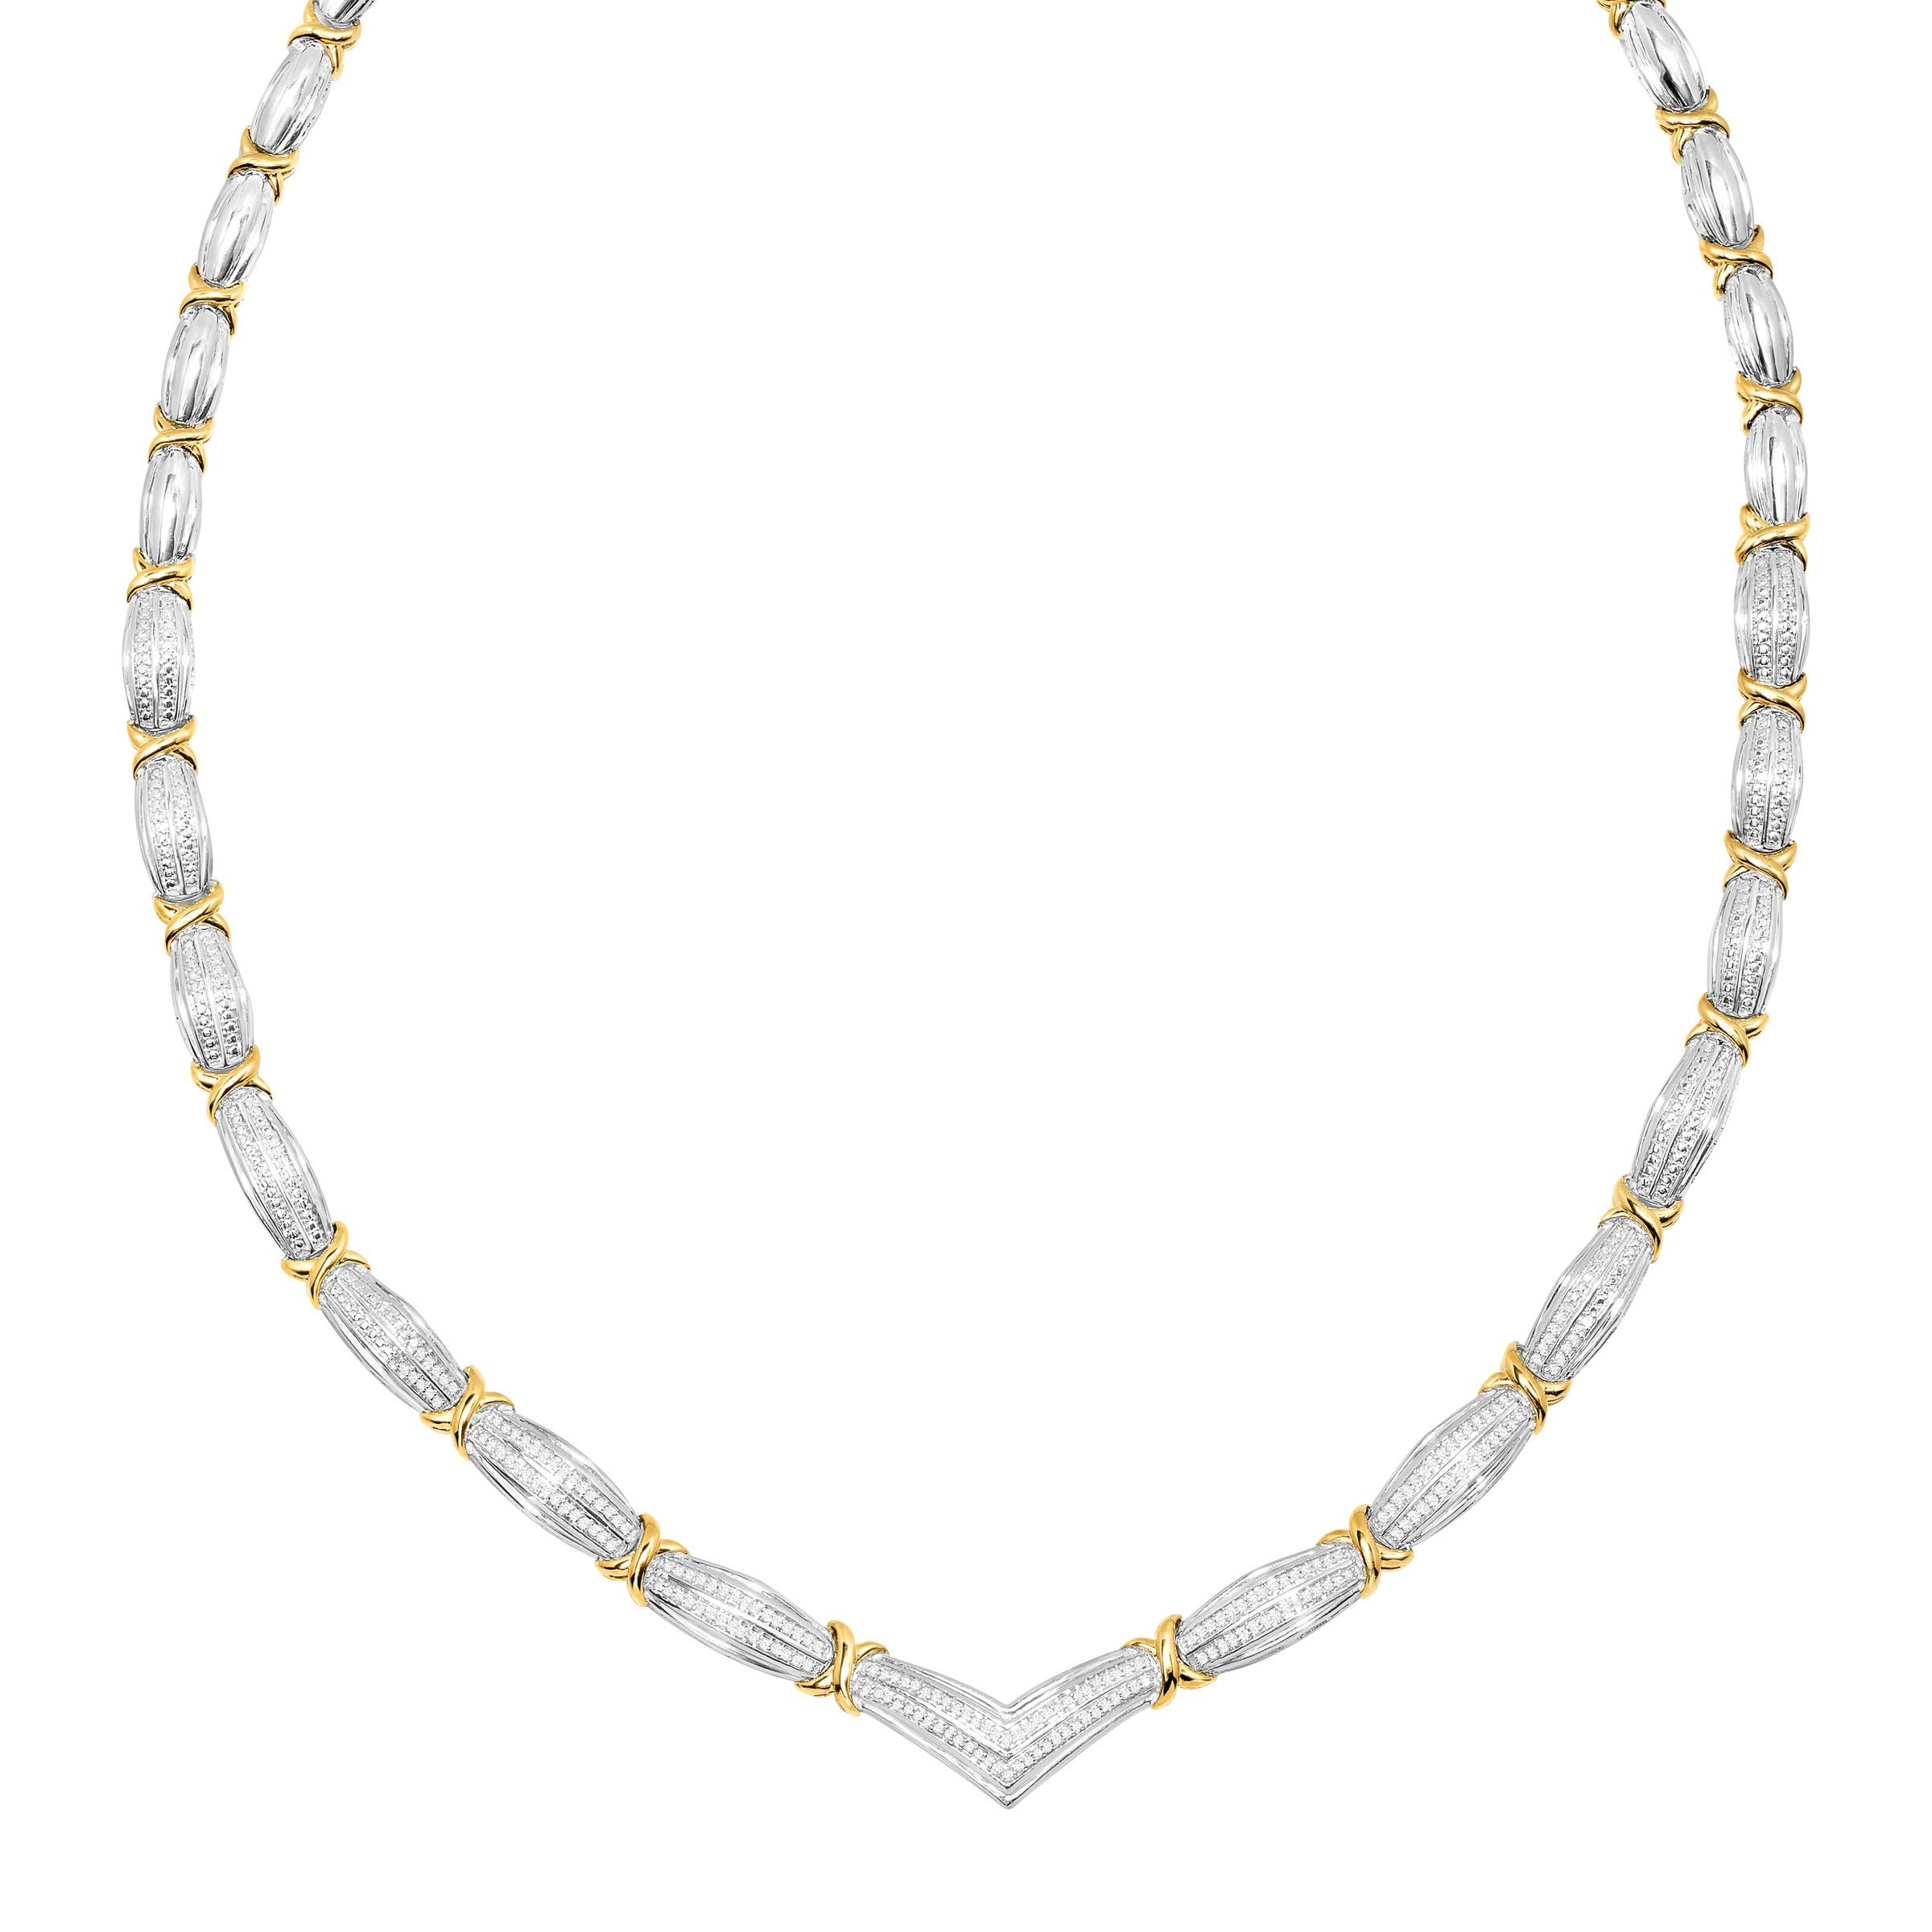 1/2 ct Diamond 'x' Link Necklace in 14K Gold-Plated Sterling Silver, 19''